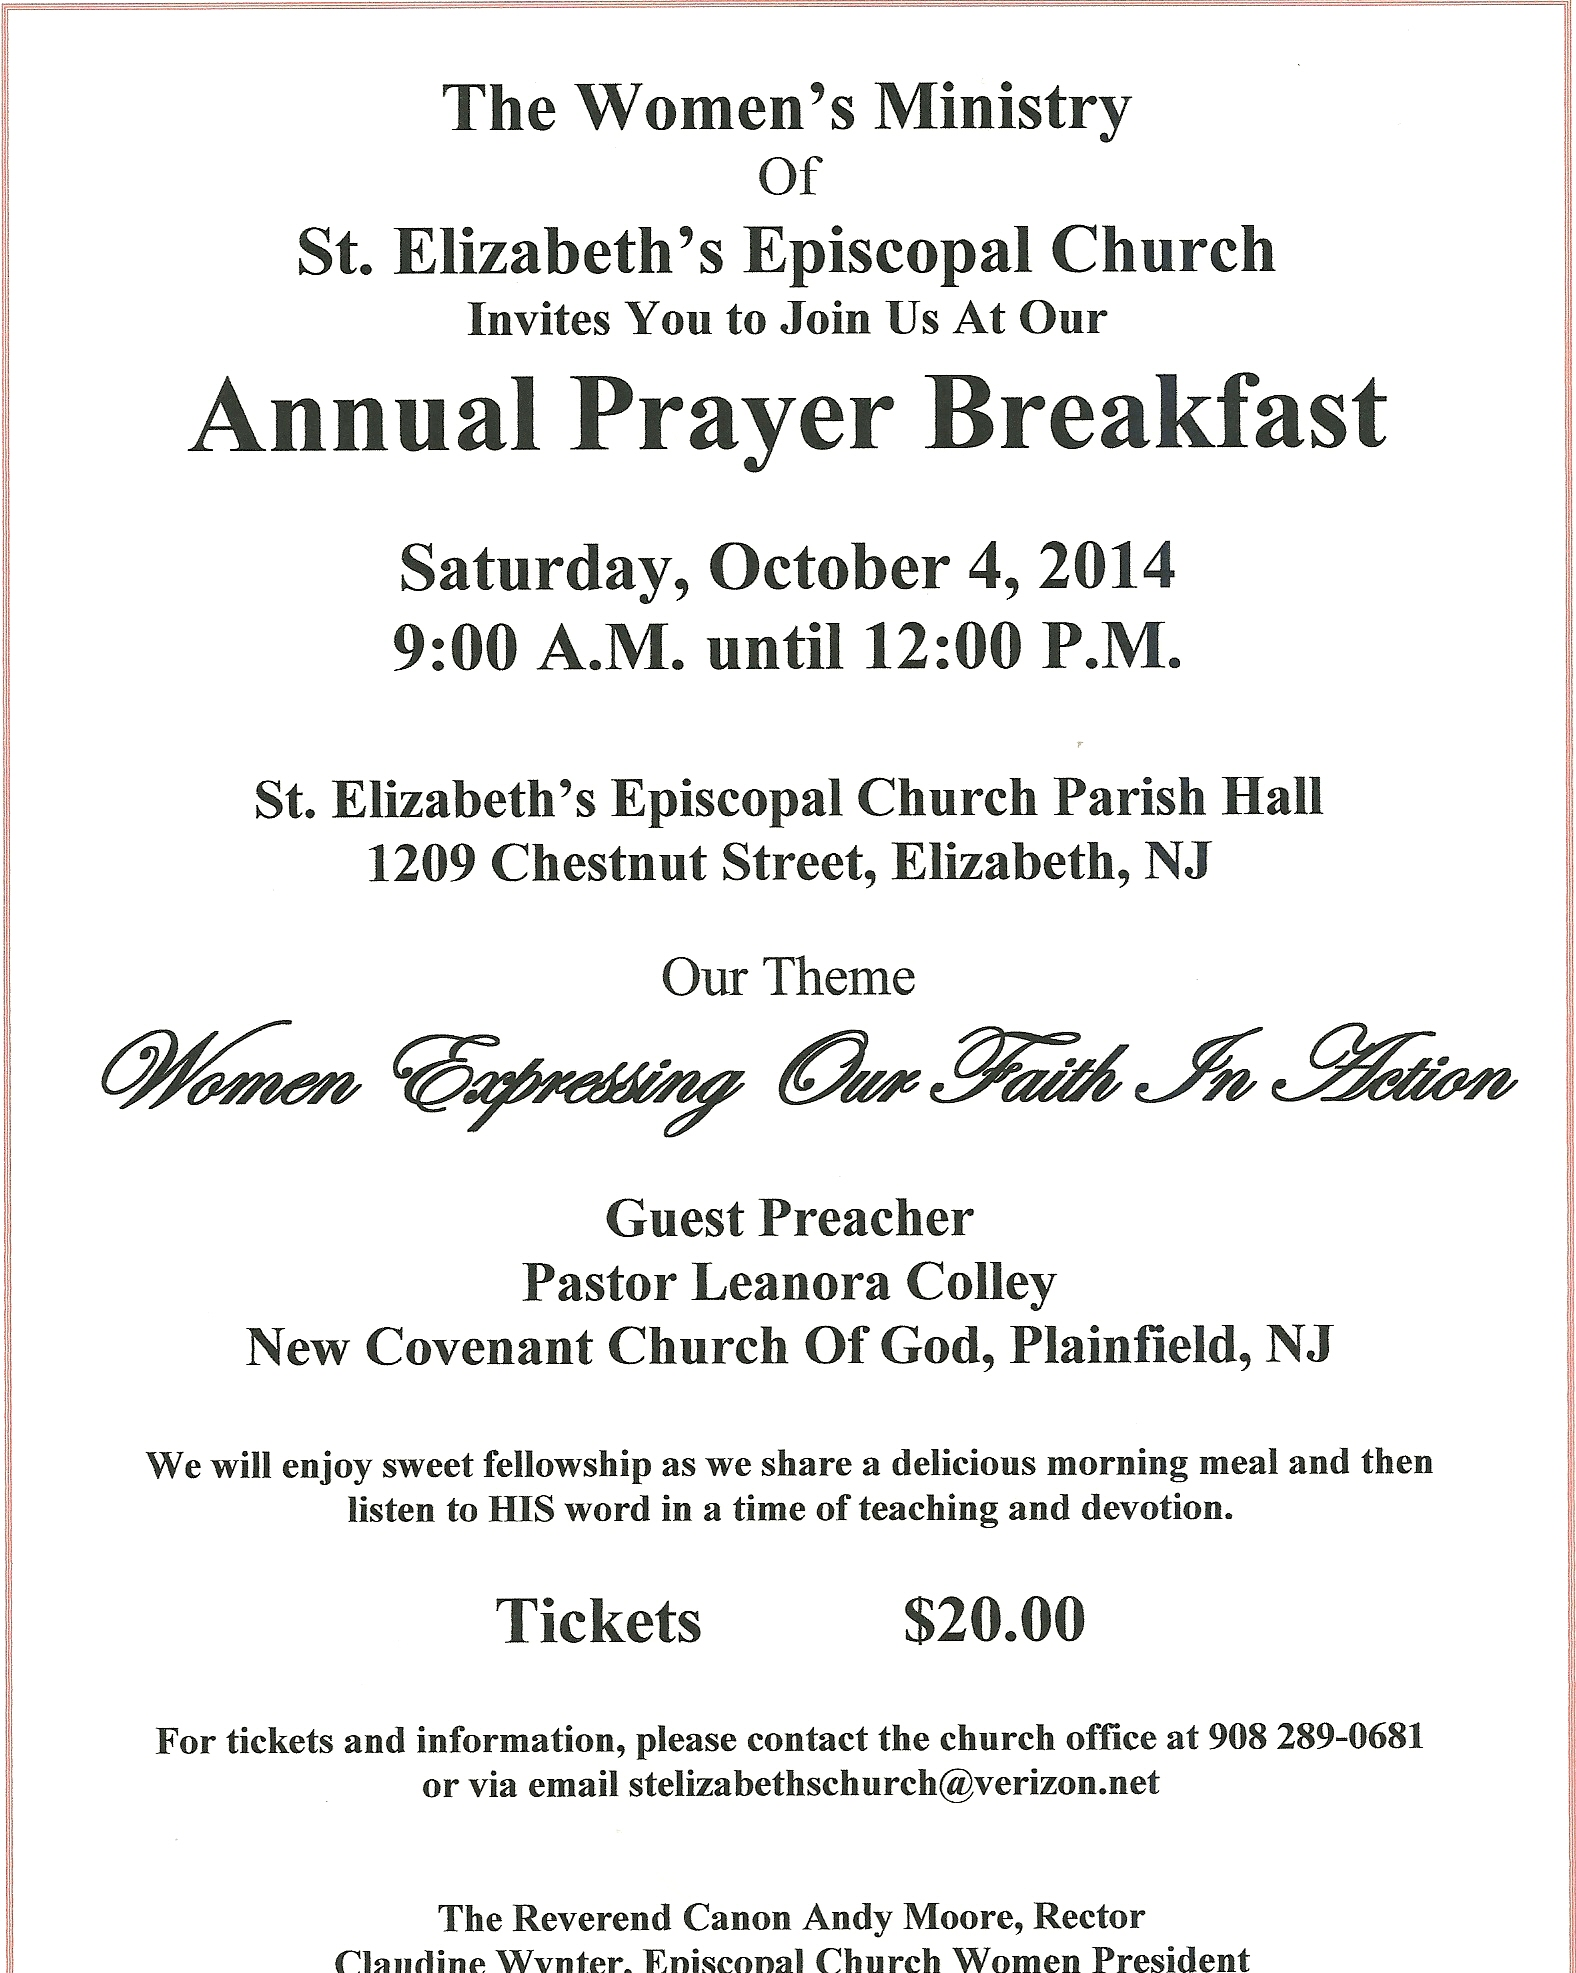 The episcopal diocese of new jersey annual prayer breakfast the women of st elizabeths church elizabeth invite you to join us for our annual prayer breakfast on saturday october 4 2014 from 9 am until 1200 altavistaventures Choice Image